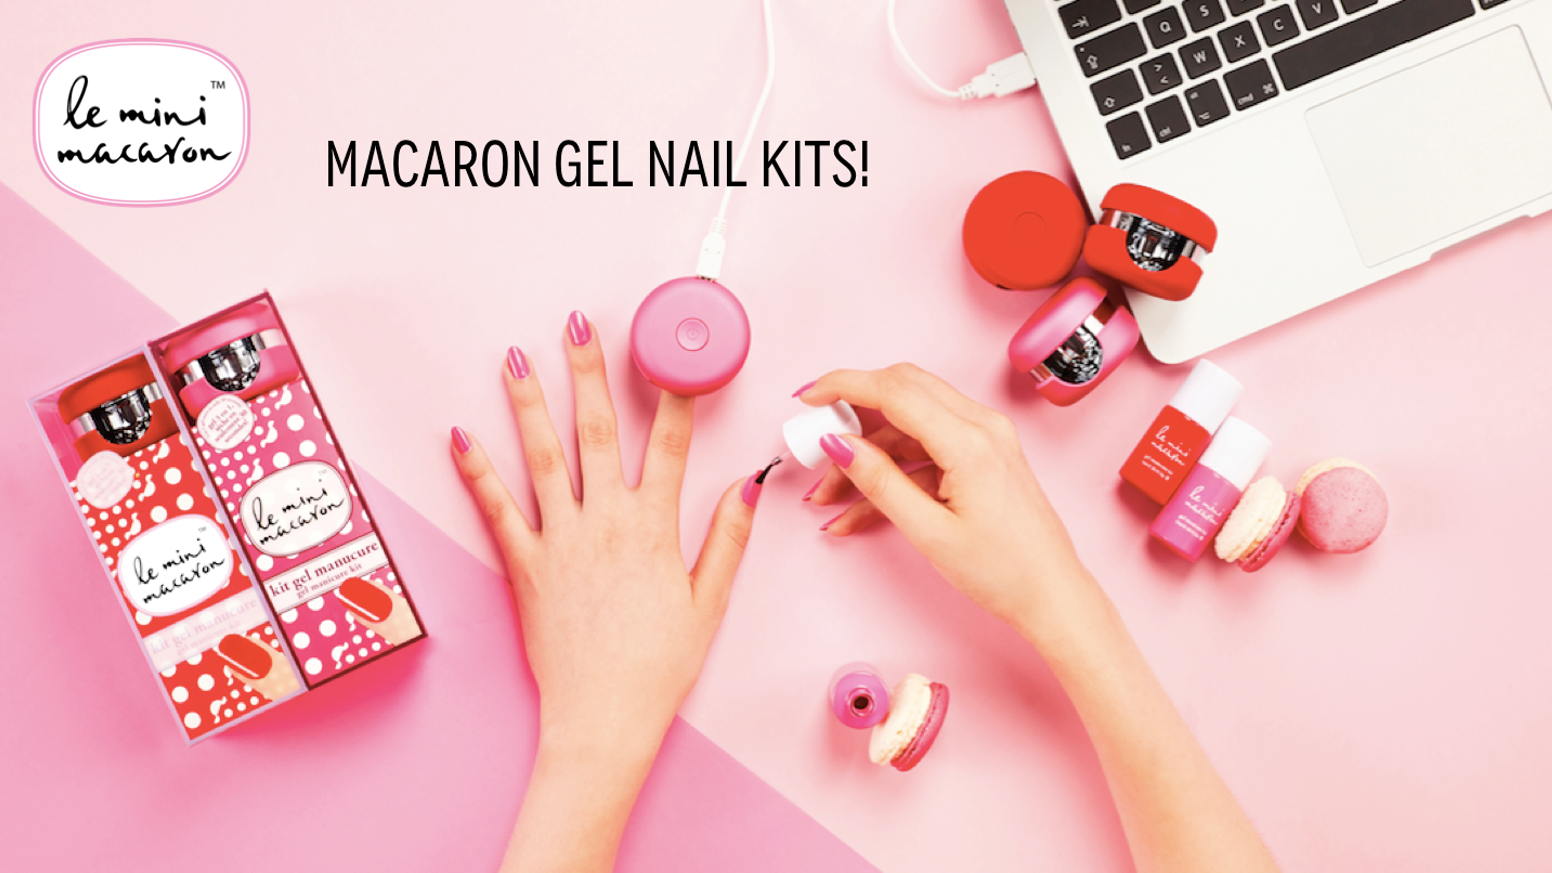 Le mini macaron best 15min gel nail kit the perfect gift by the worlds fastest and most affordable gel manicure kits diy gel nails with a cute macaron lamp when you want where you want solutioingenieria Gallery